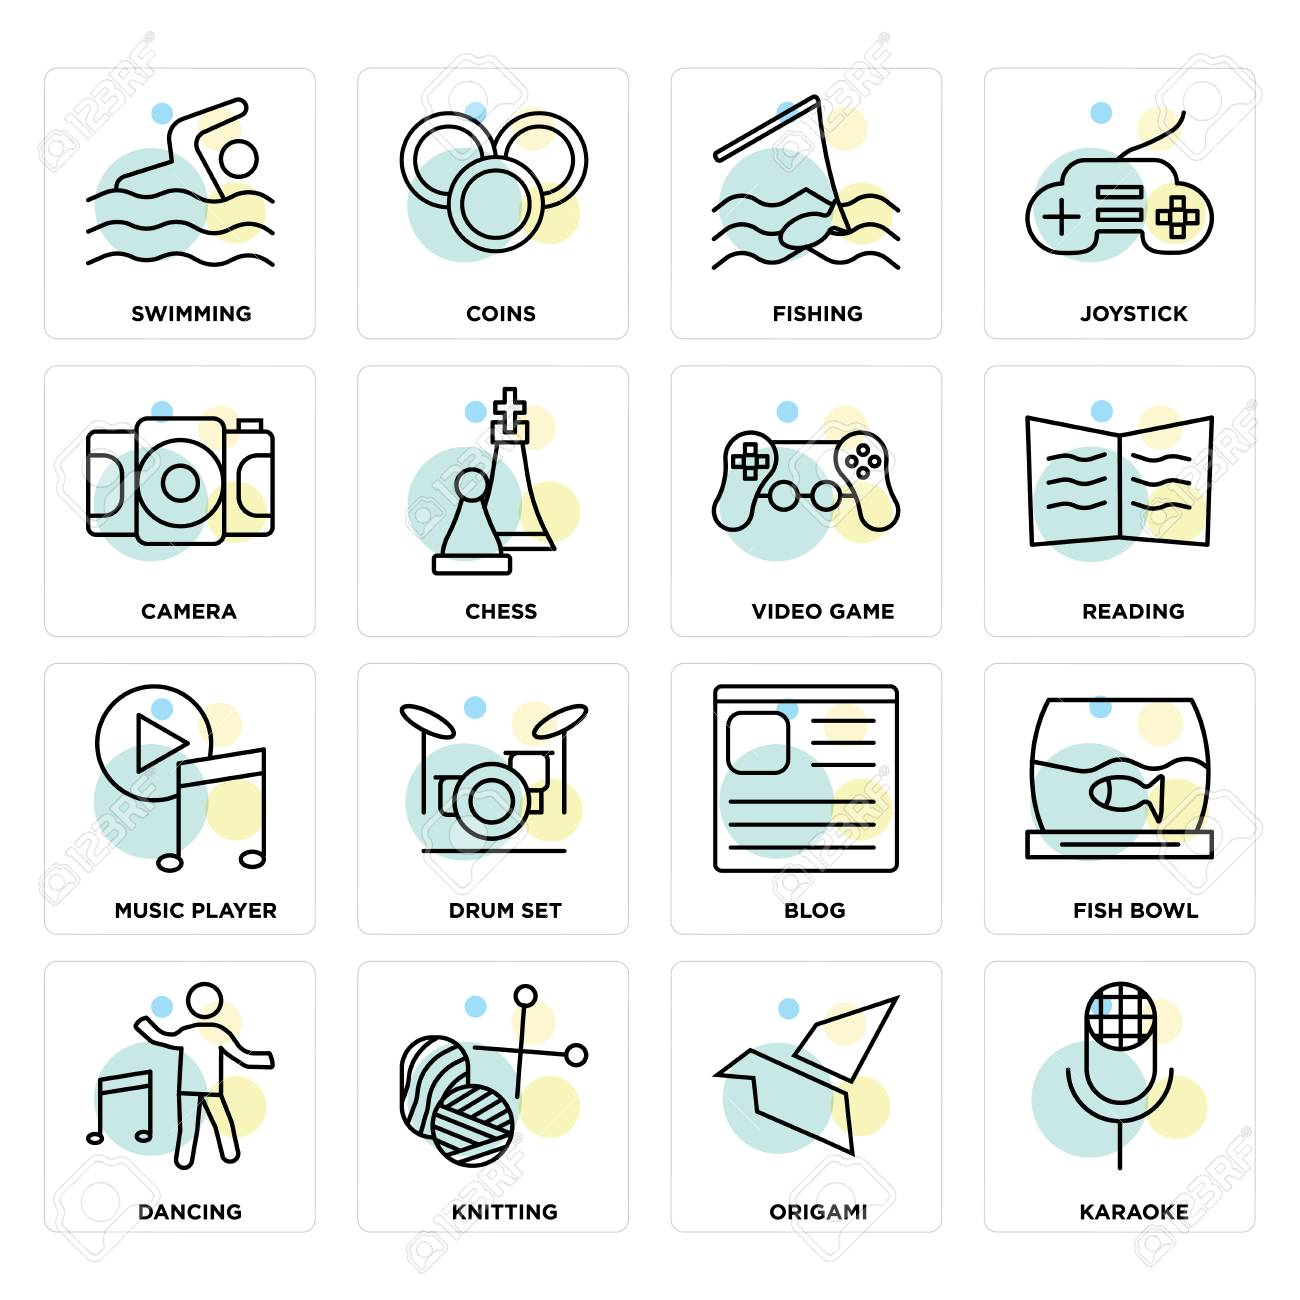 Set Of 16 icons such as Karaoke, Origami, Knitting, Dancing,